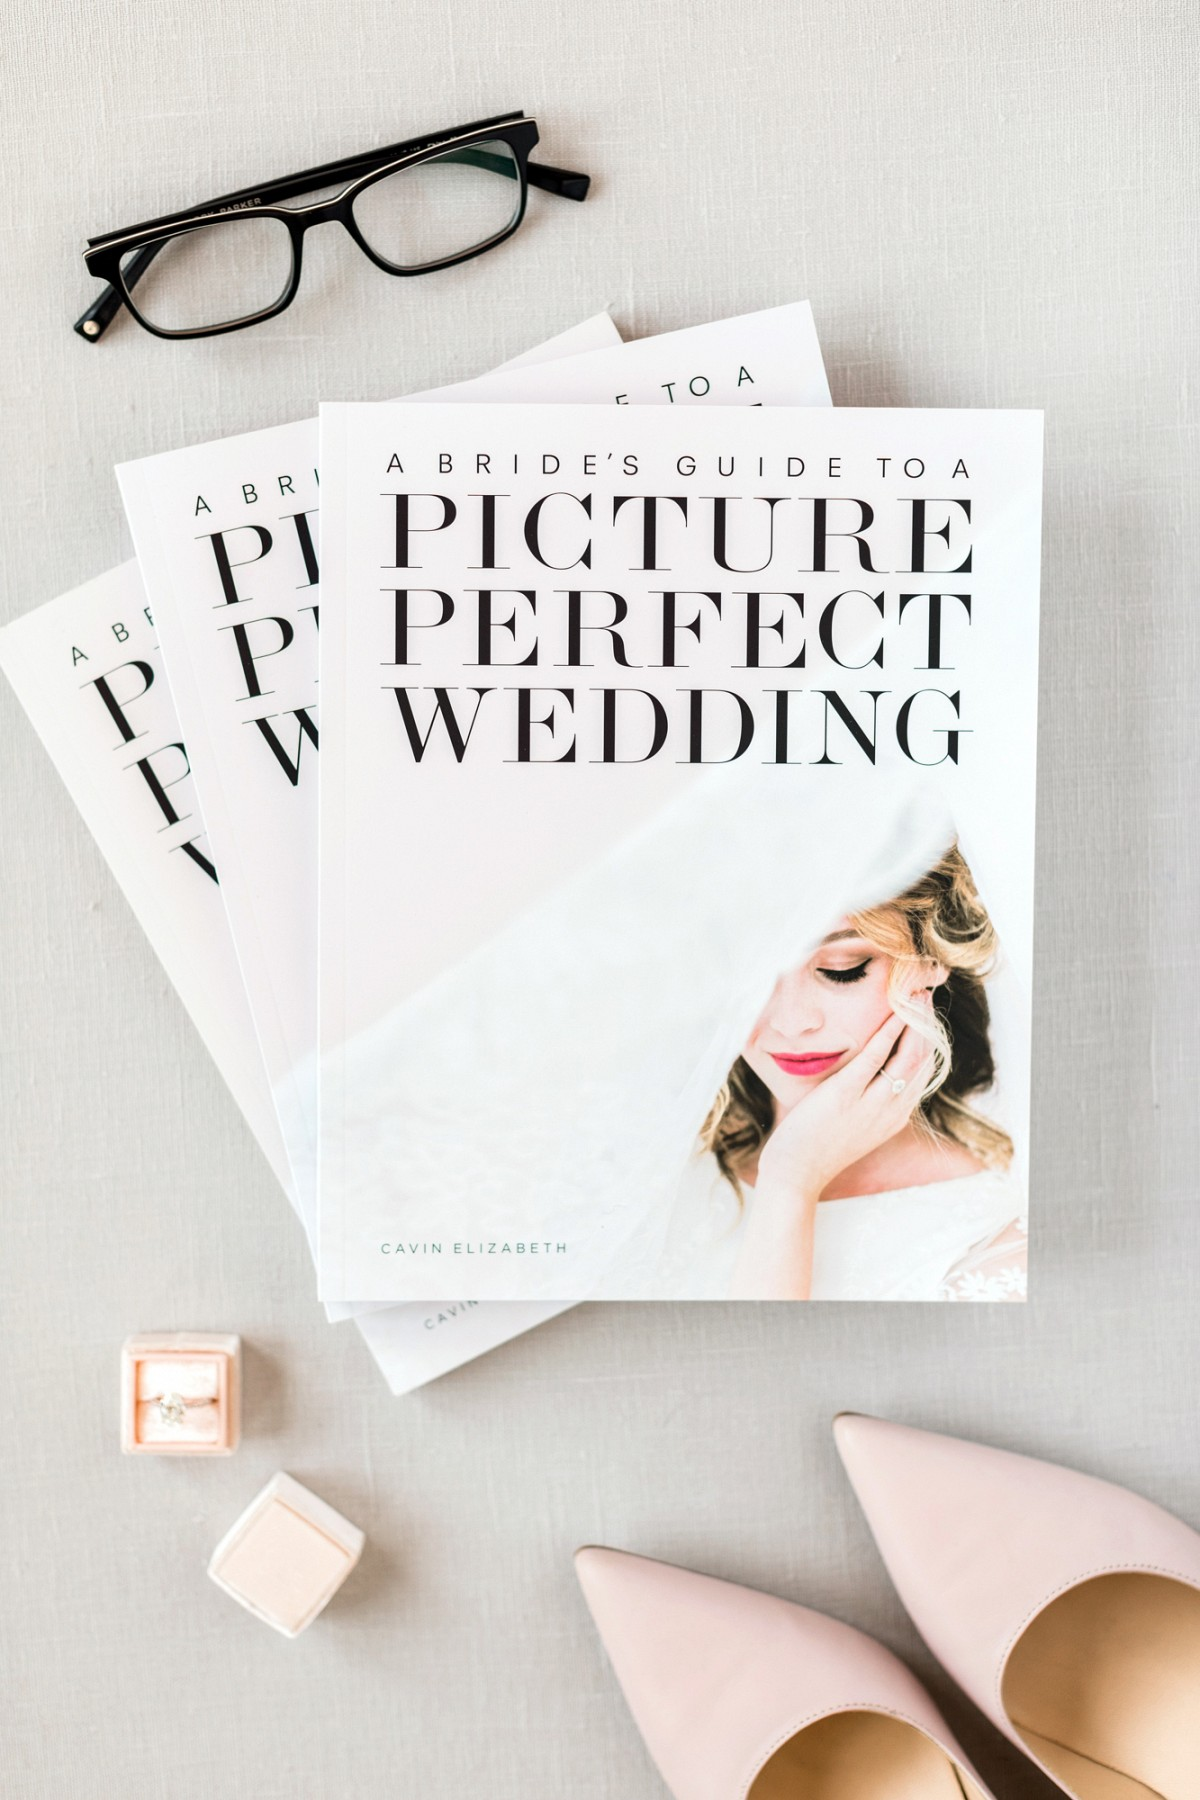 Bridal Guide to a Picture Perfect Wedding